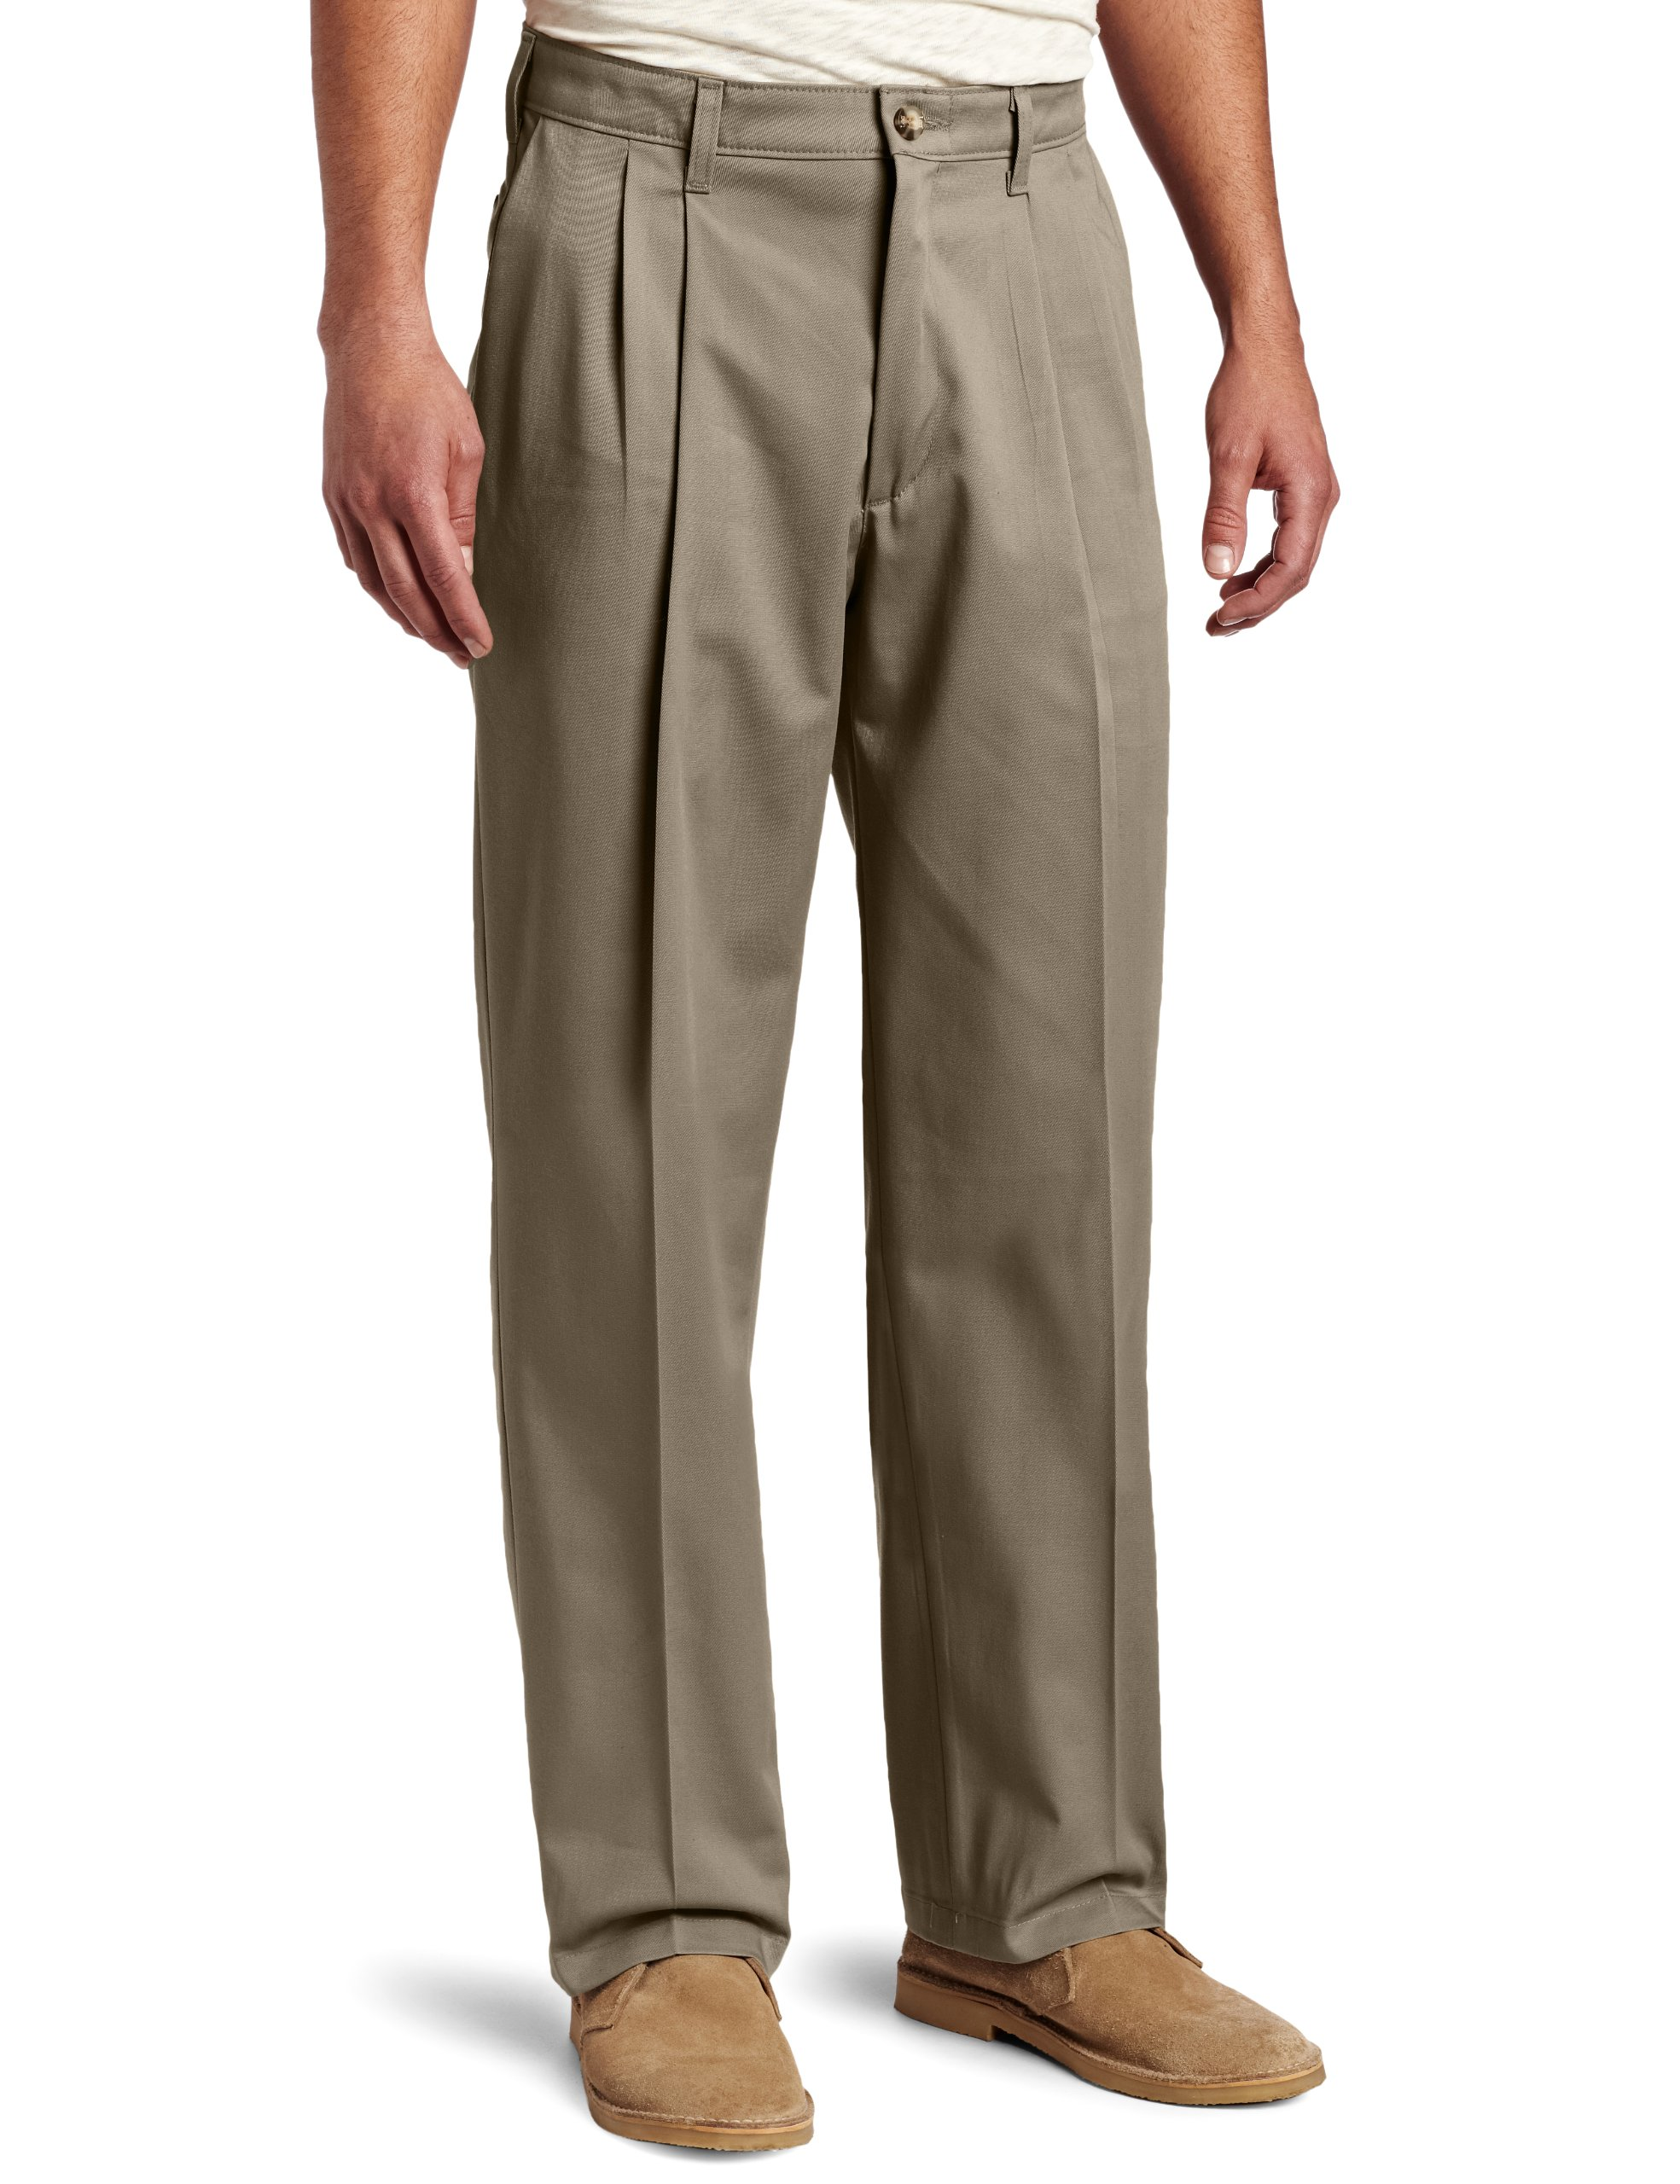 acf66285 LEE Men's Comfort Waist Custom Relaxed Fit Pleated Pant,Olive, 38W x 29L